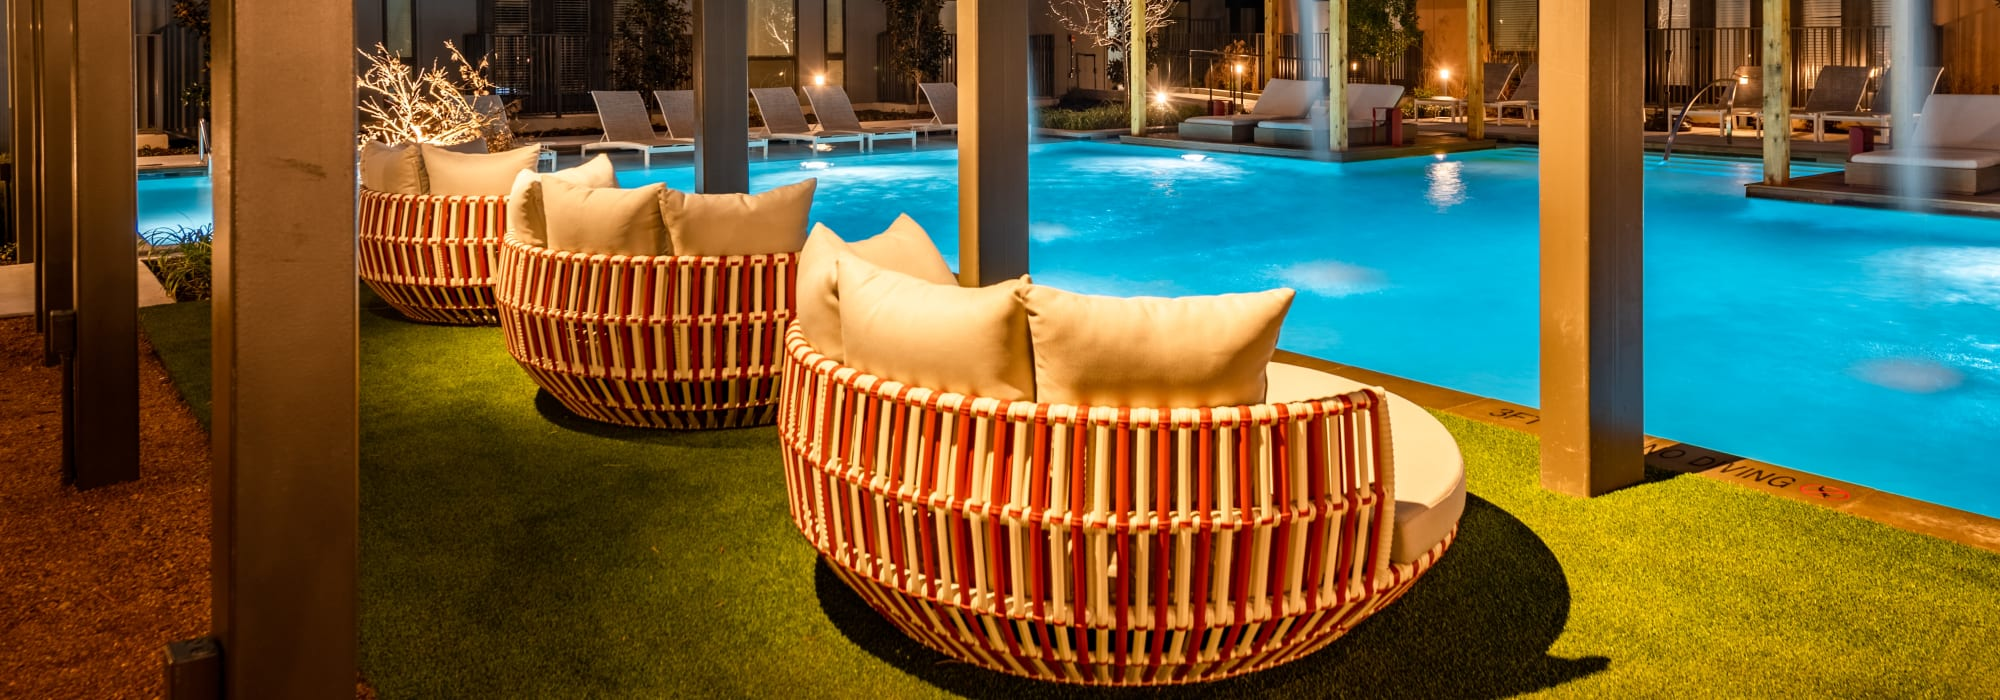 Resort-style swimming pool with shaded lounge seating nearby at The Langford in Dallas, Texas